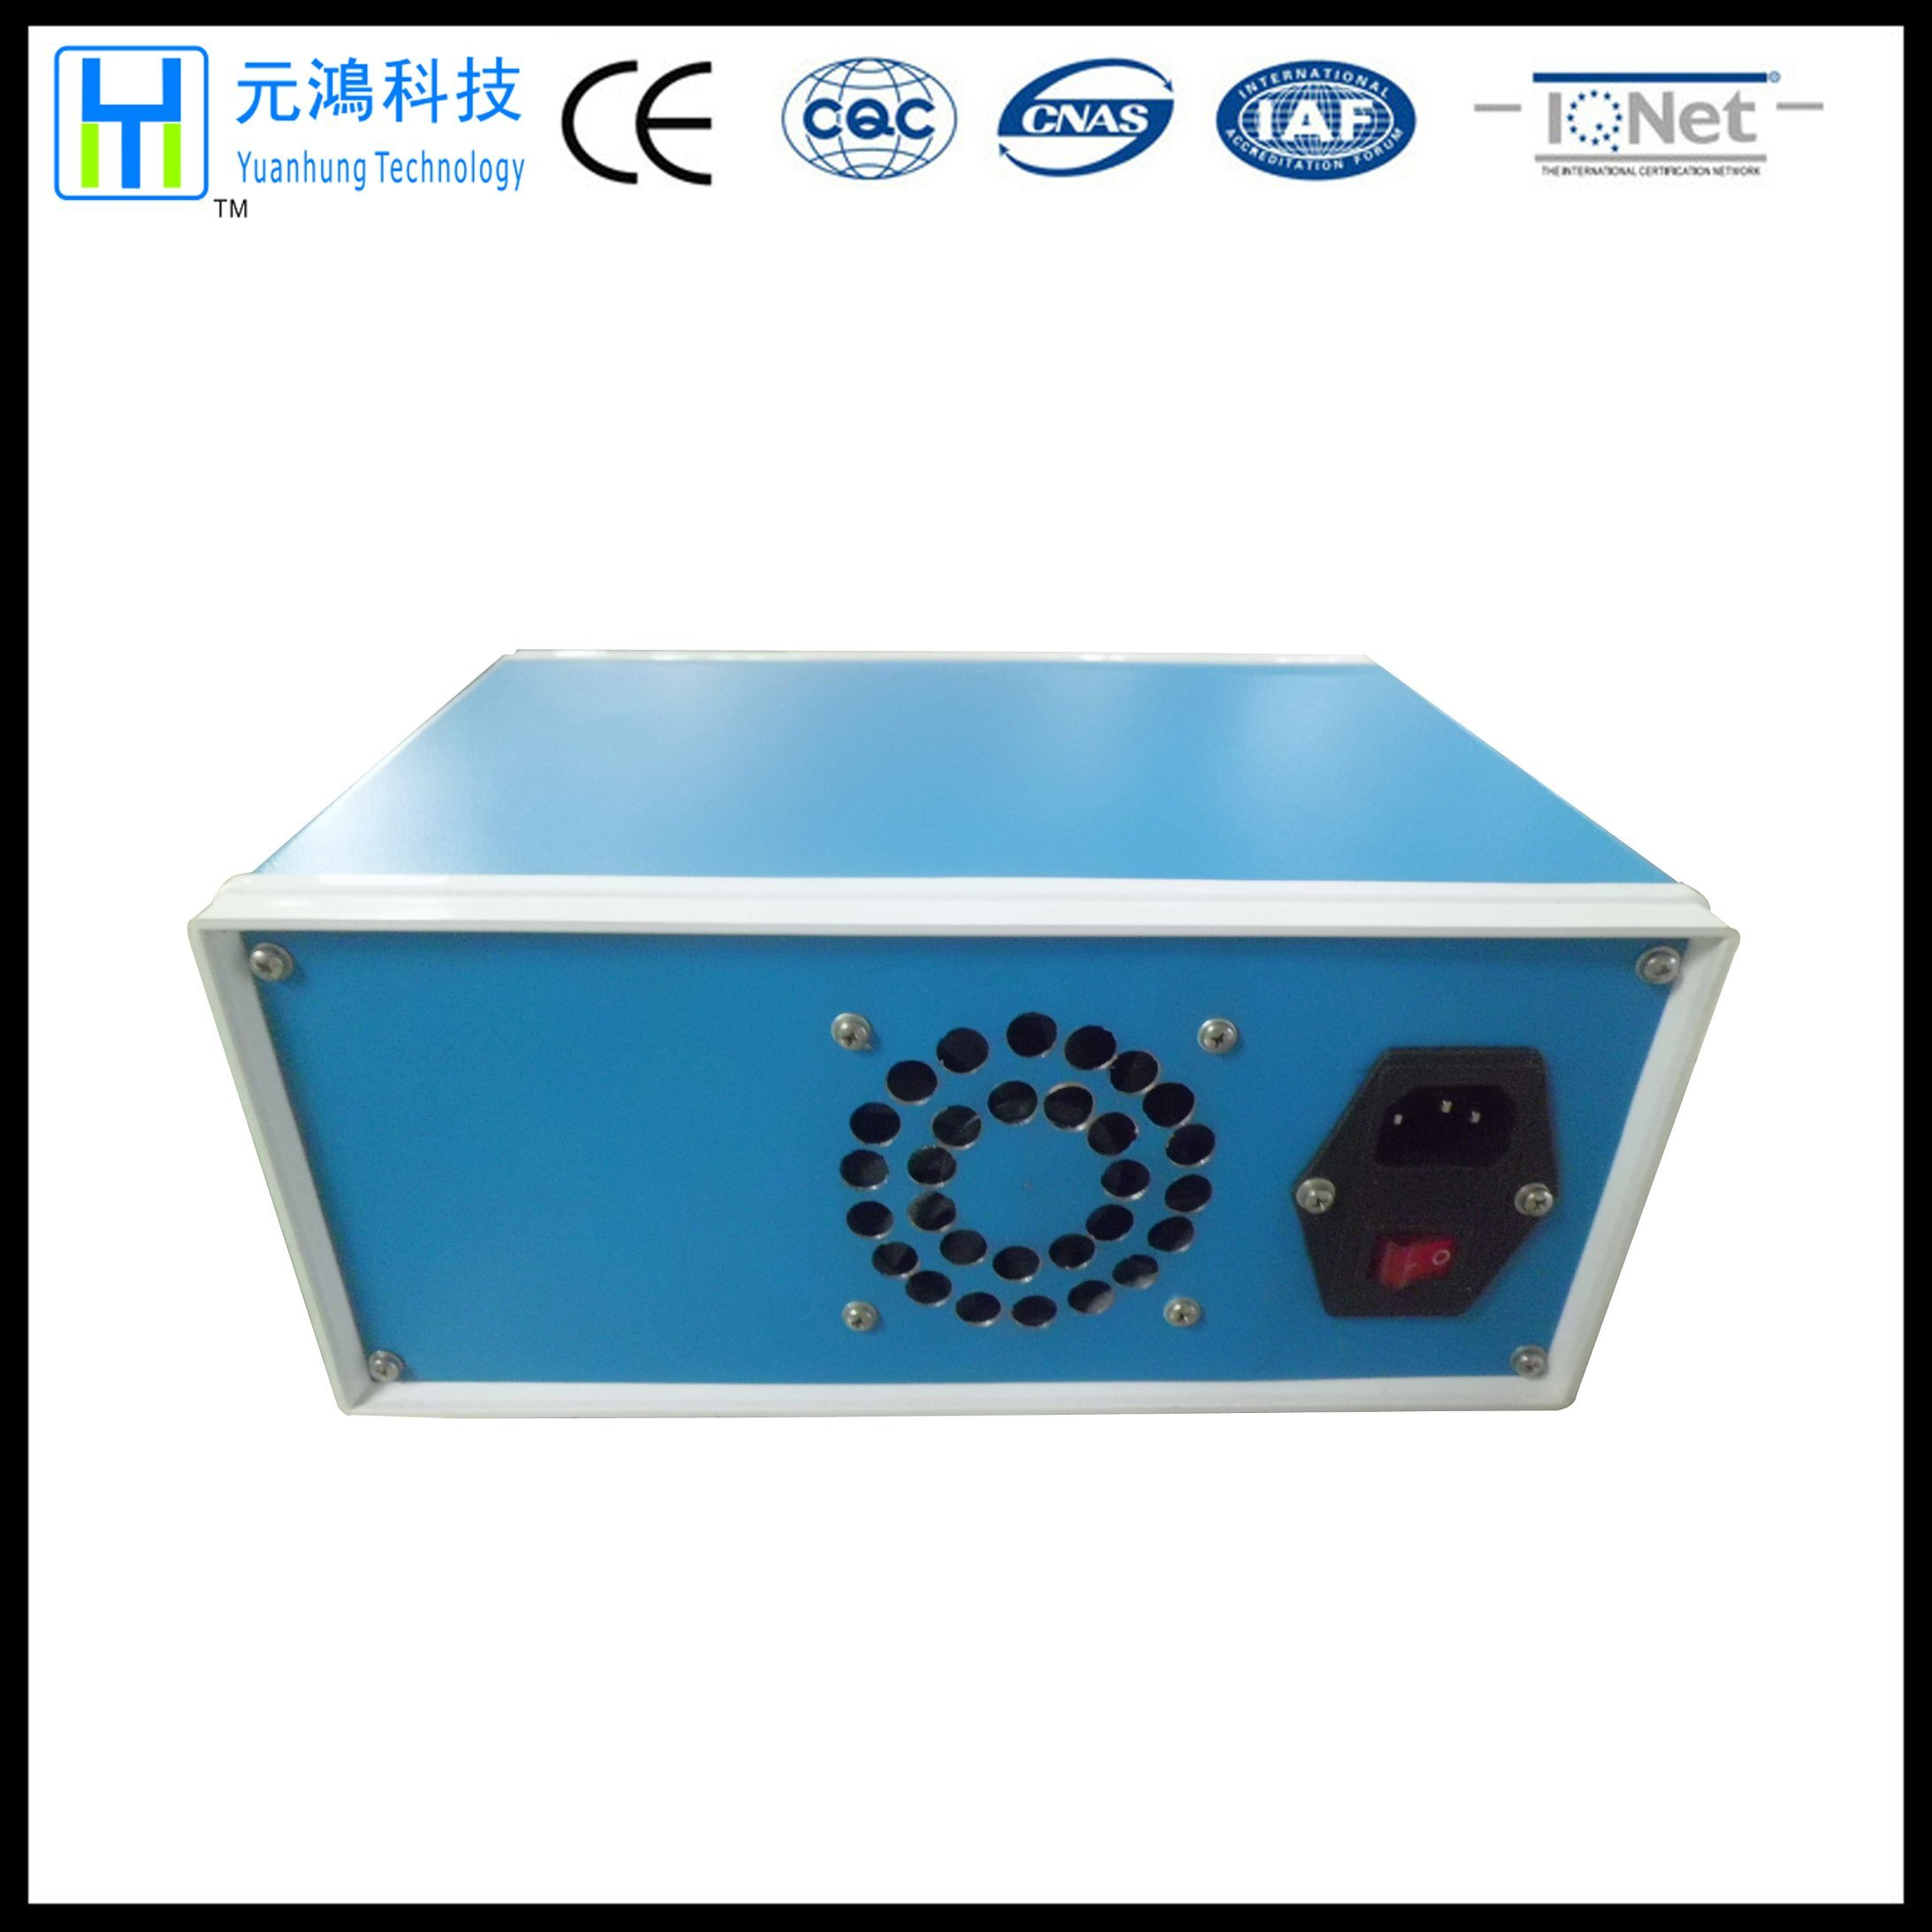 10A 5V Electroplating Power Supplies Laboratory with Reversing